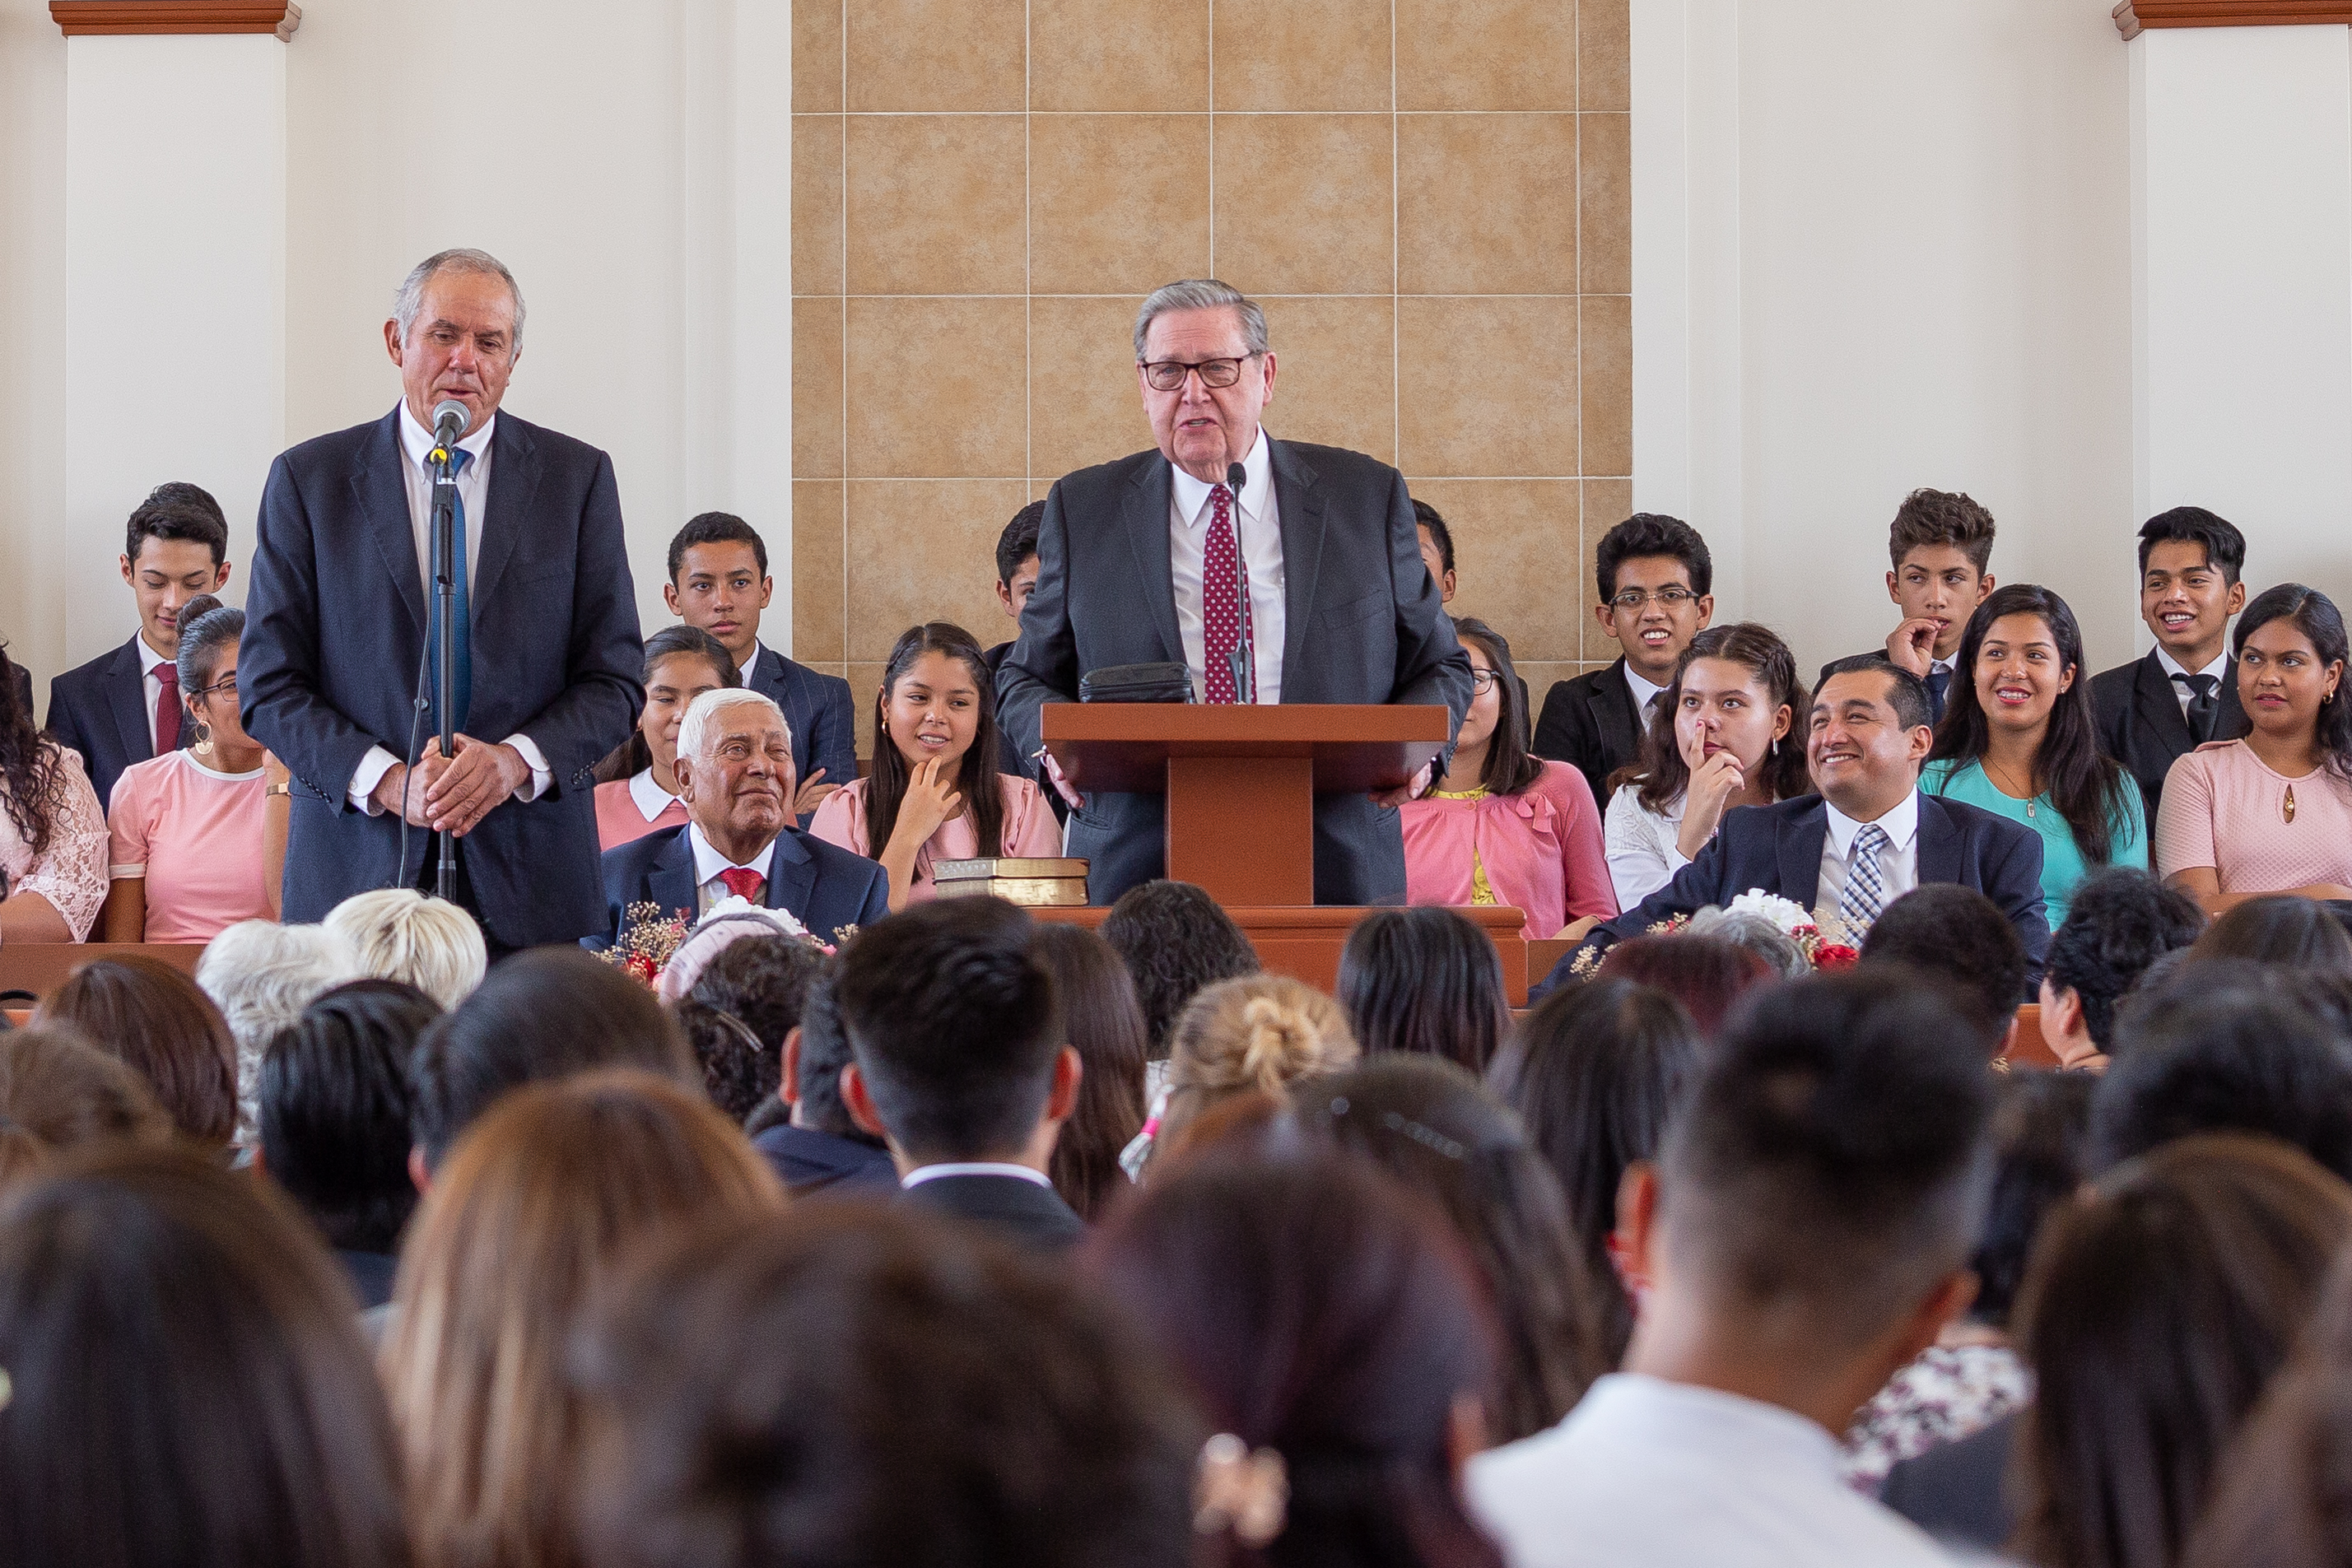 Elder Jeffrey R. Holland of the Quorum of the Twelve Apostles addresses members during a special stake conference at the Tula Mexico Stake Center north of Mexico City on Sunday, May 26, 2019.